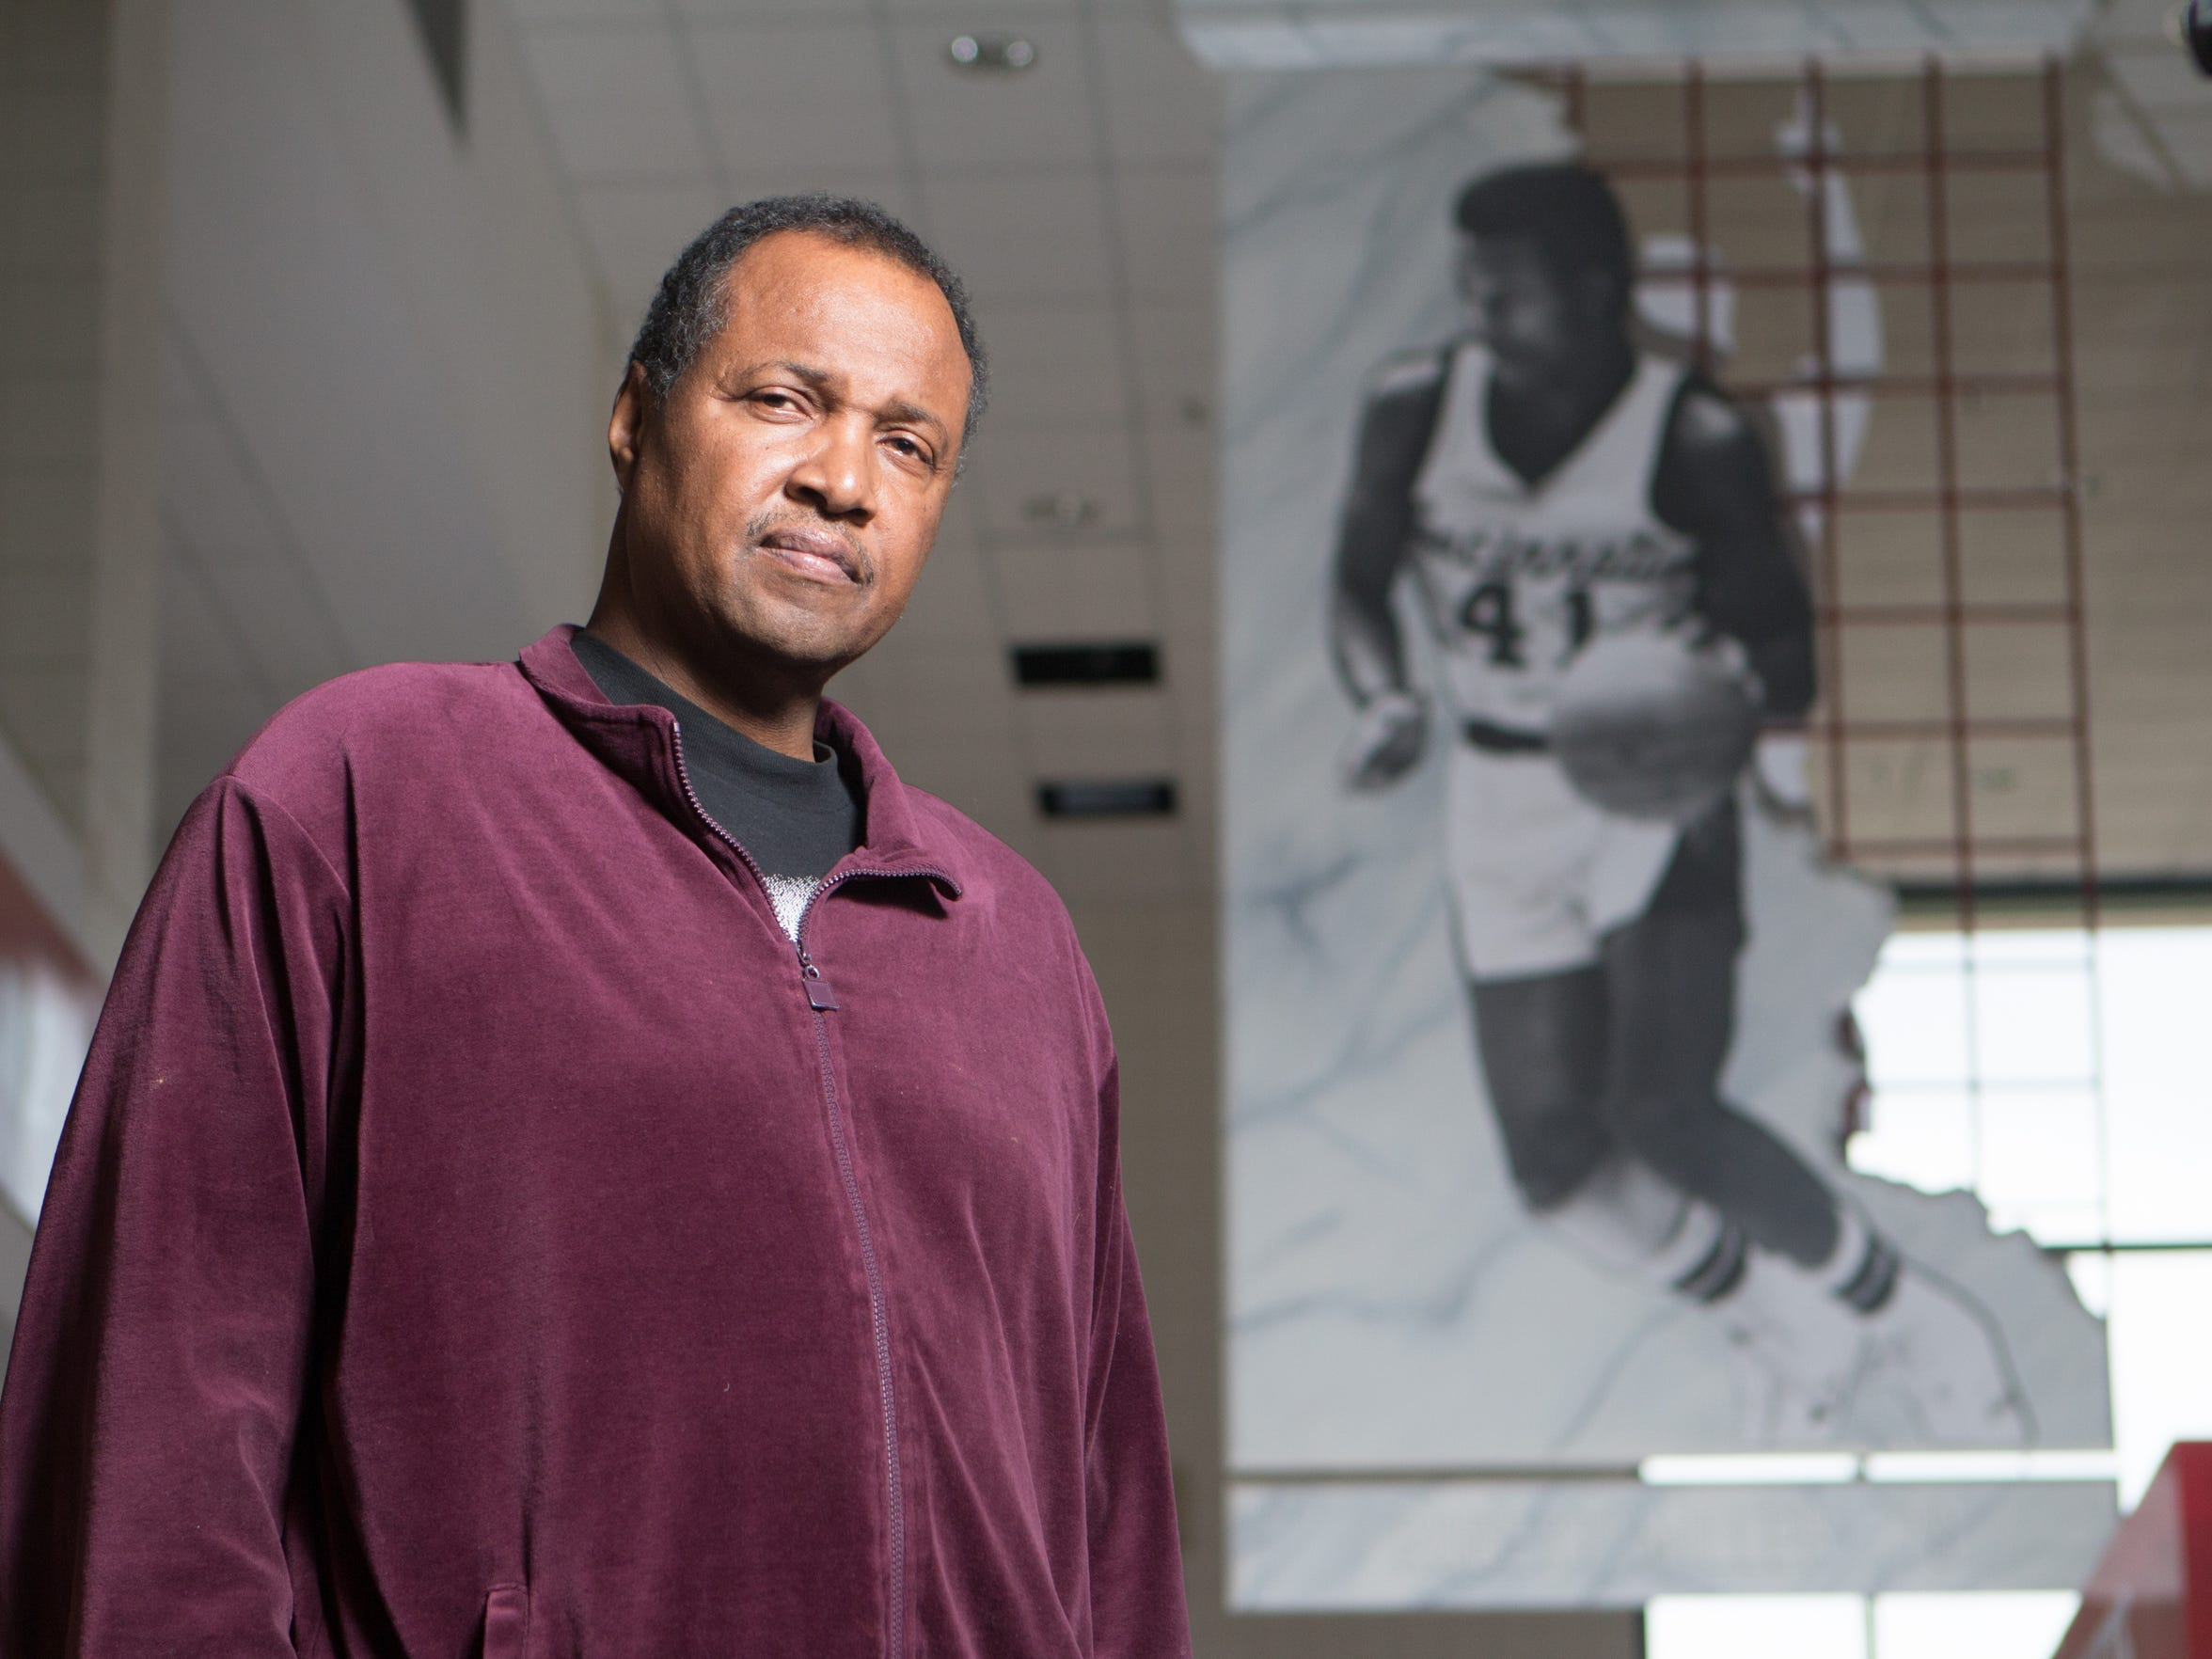 Louisville native Robert Miller played college basketball at the University of Cincinnati. He was there under head coach Gale Catlett from 1975-1978. He is pictured in the Shoemaker Ceneter on the UC campus. A photograph of him and his number 41 jersey hangs in the center with other UC greats.